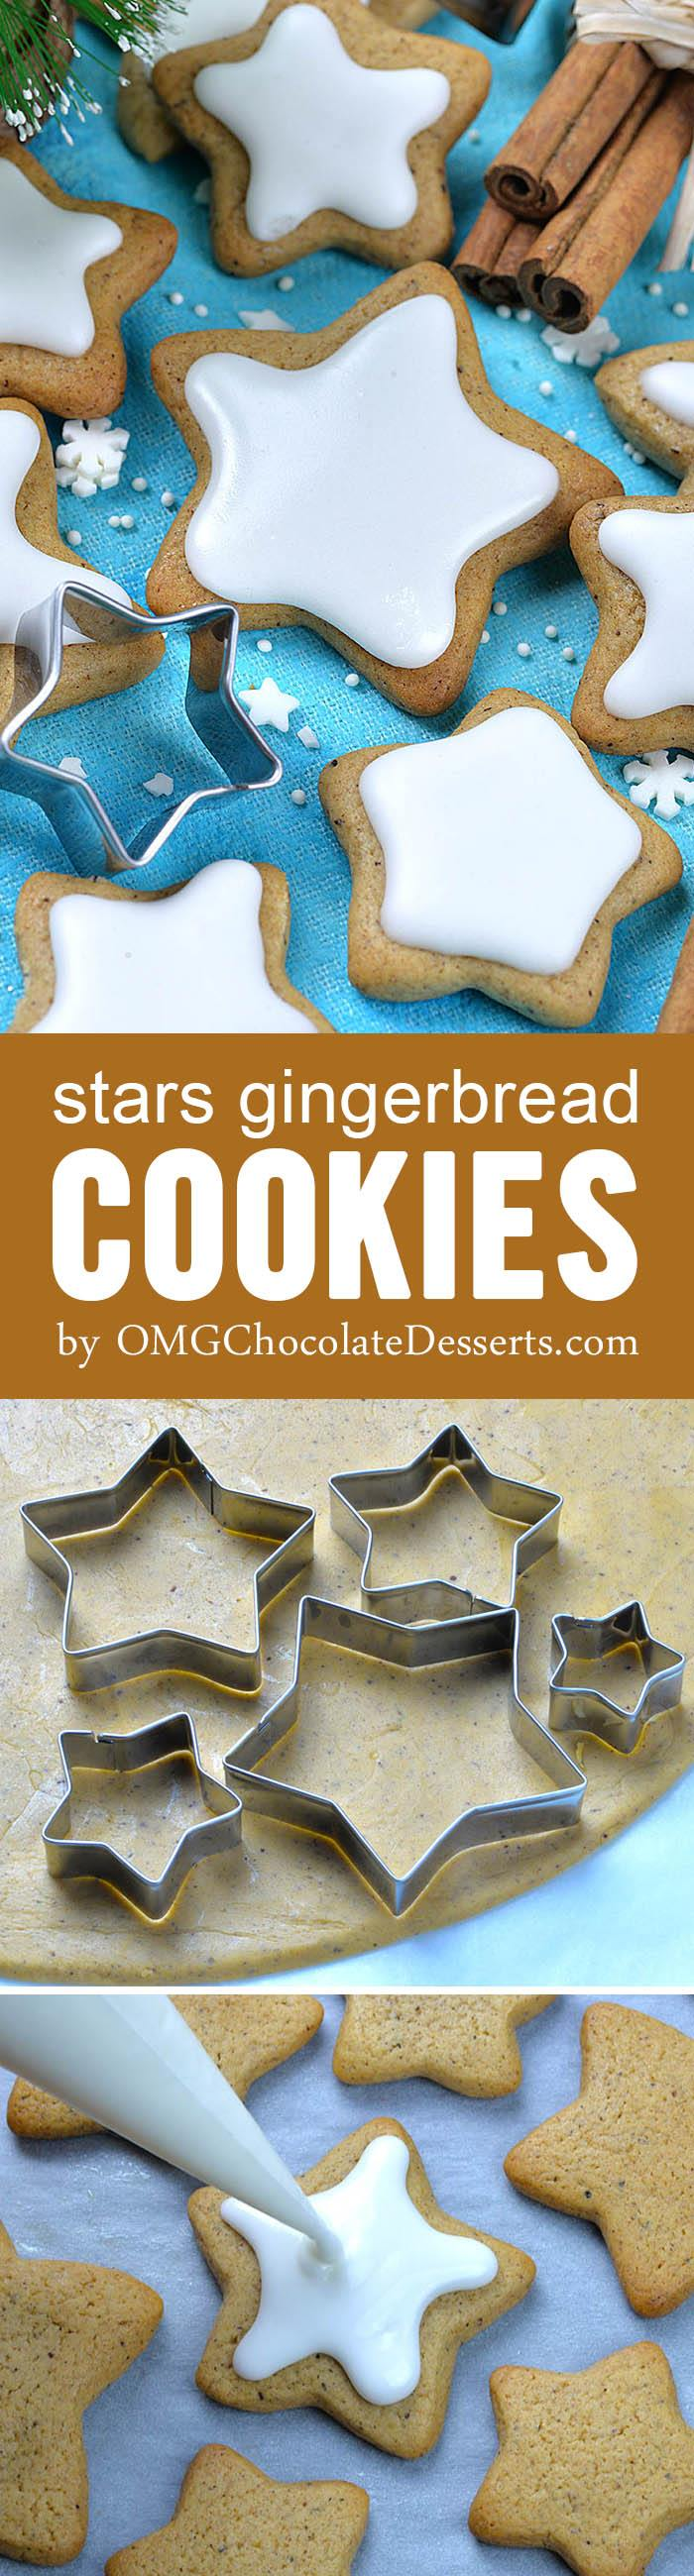 Star Gingerbread Cookies is perfect, delicious, sweet and spicy, easy Christmas cookie recipe you are all looking for.